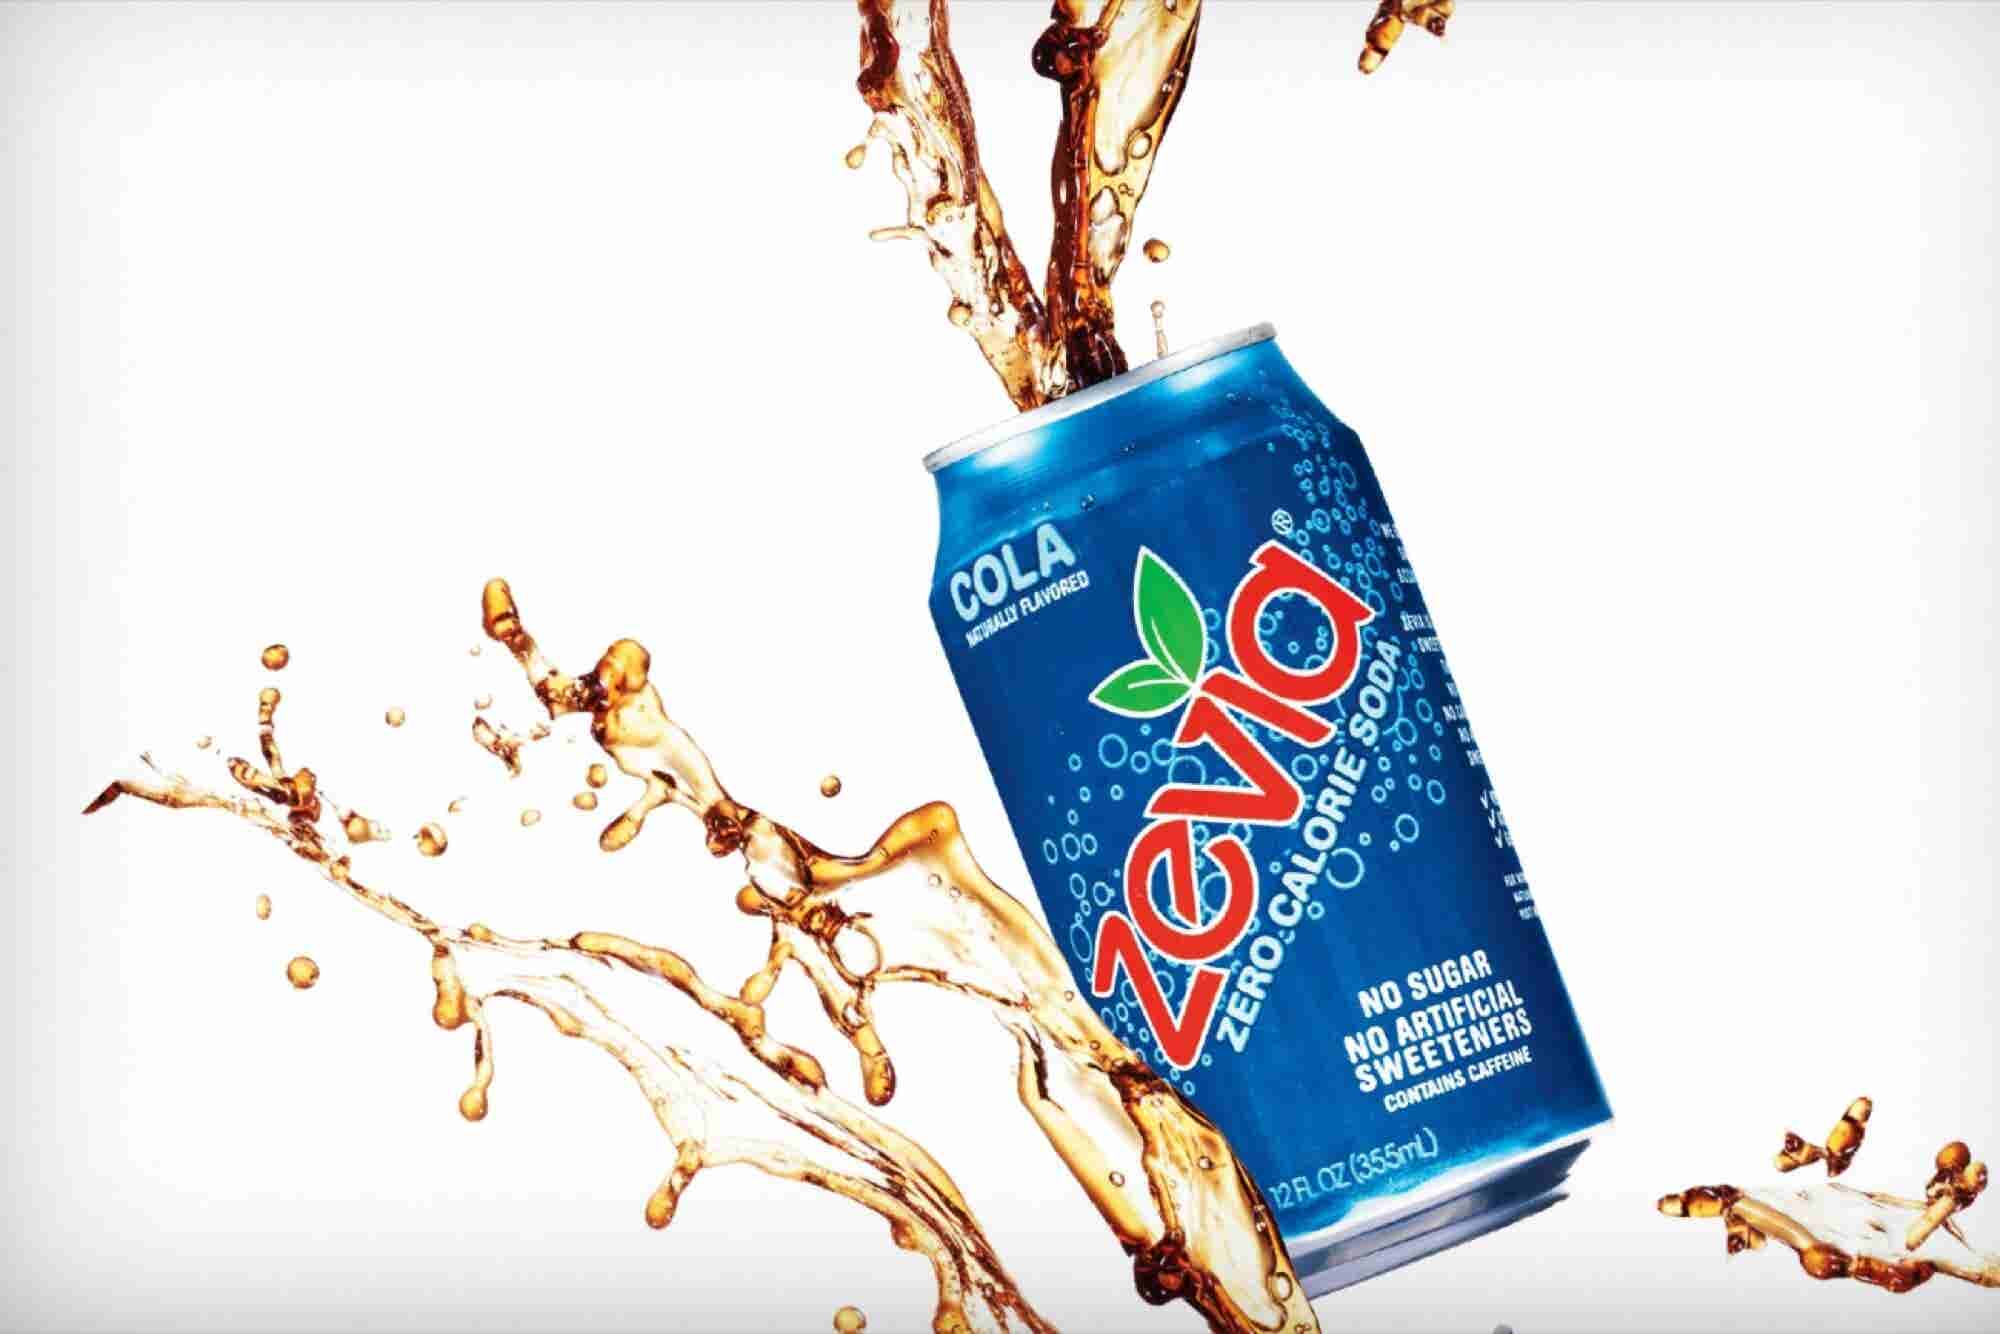 How This Natural, Sugar-Free Soda Is Making Major Inroads With Consumers